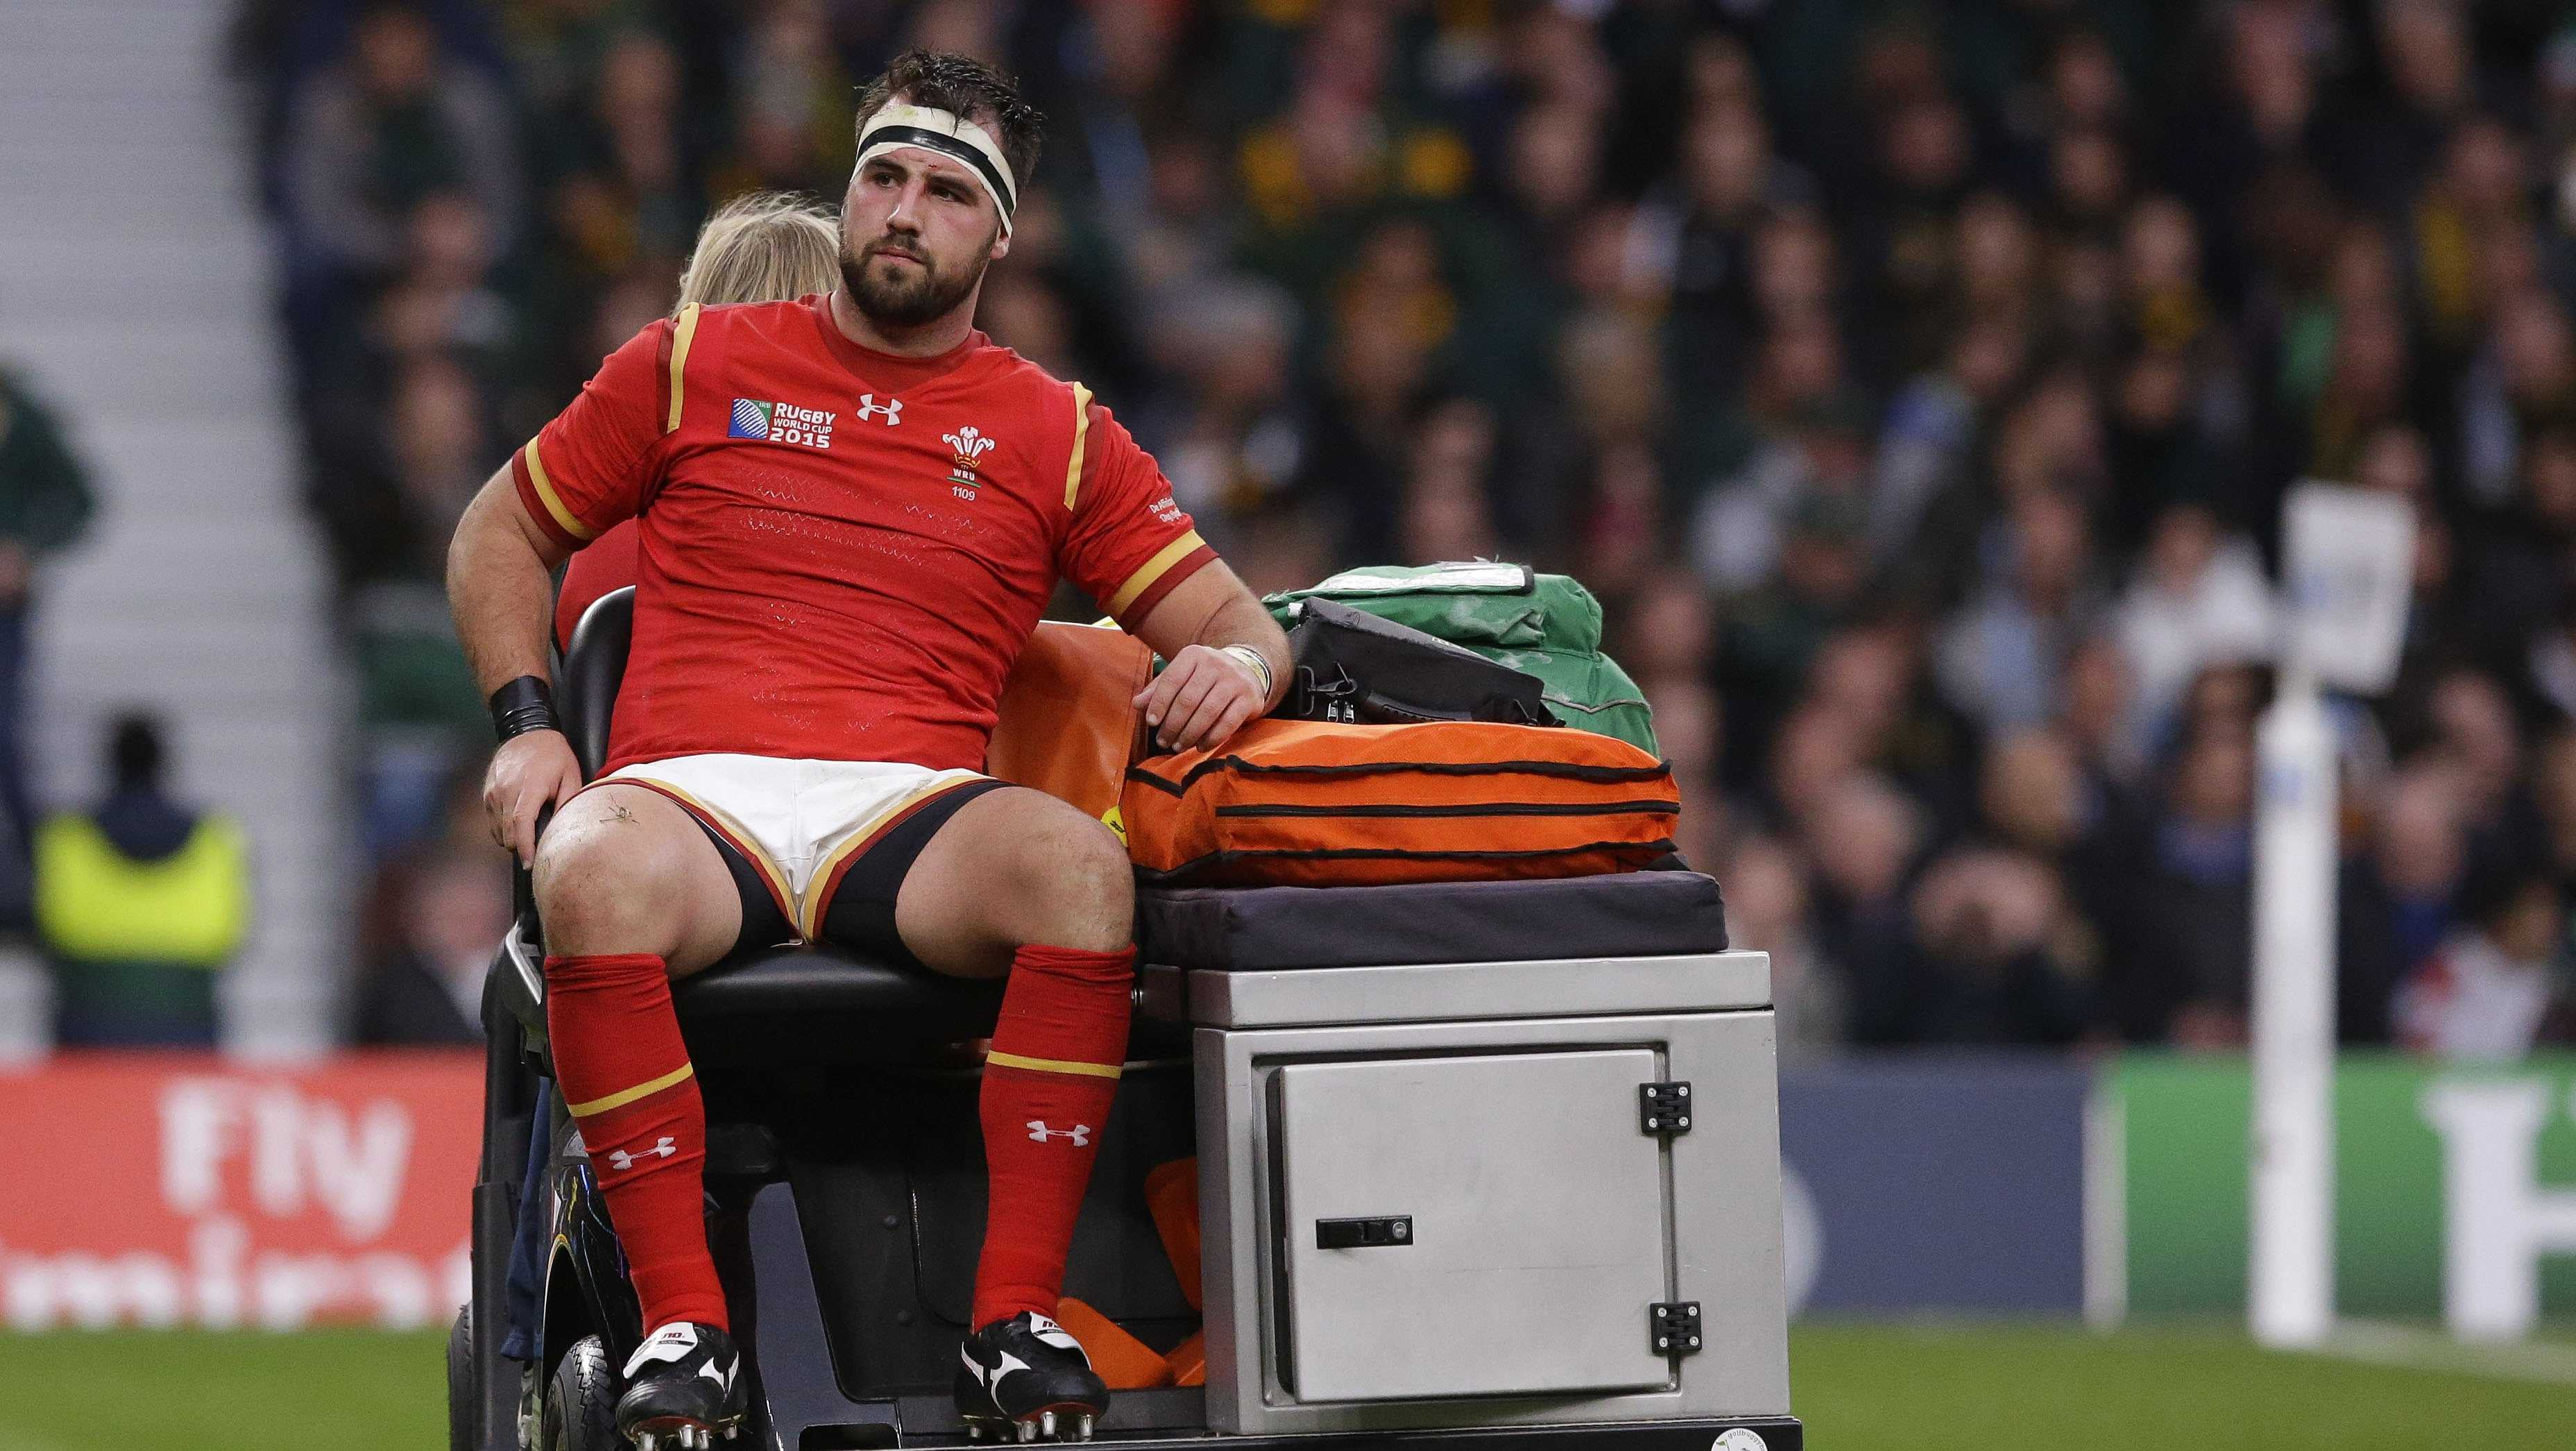 Wales' Scott Baldwin is taken from the pitch after getting injured during the Rugby World Cup quarterfinal match between South Africa and Wales at Twickenham Stadium in London, Saturday, Oct. 17, 2015.